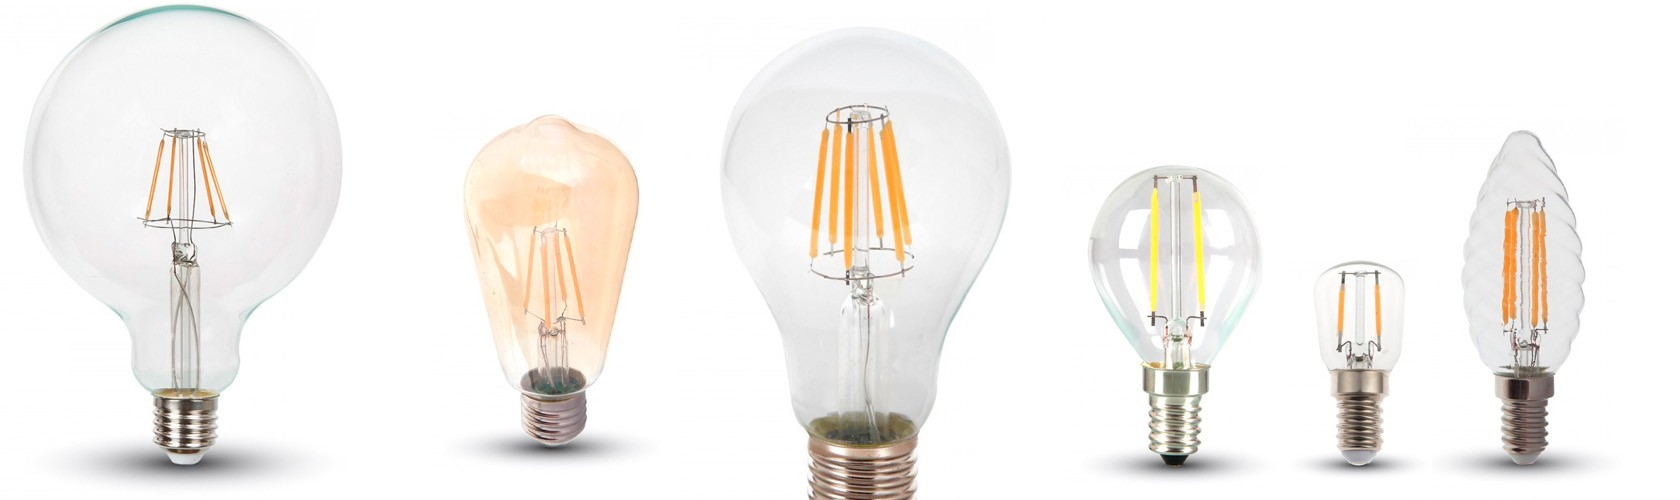 edison style LED light bulbs